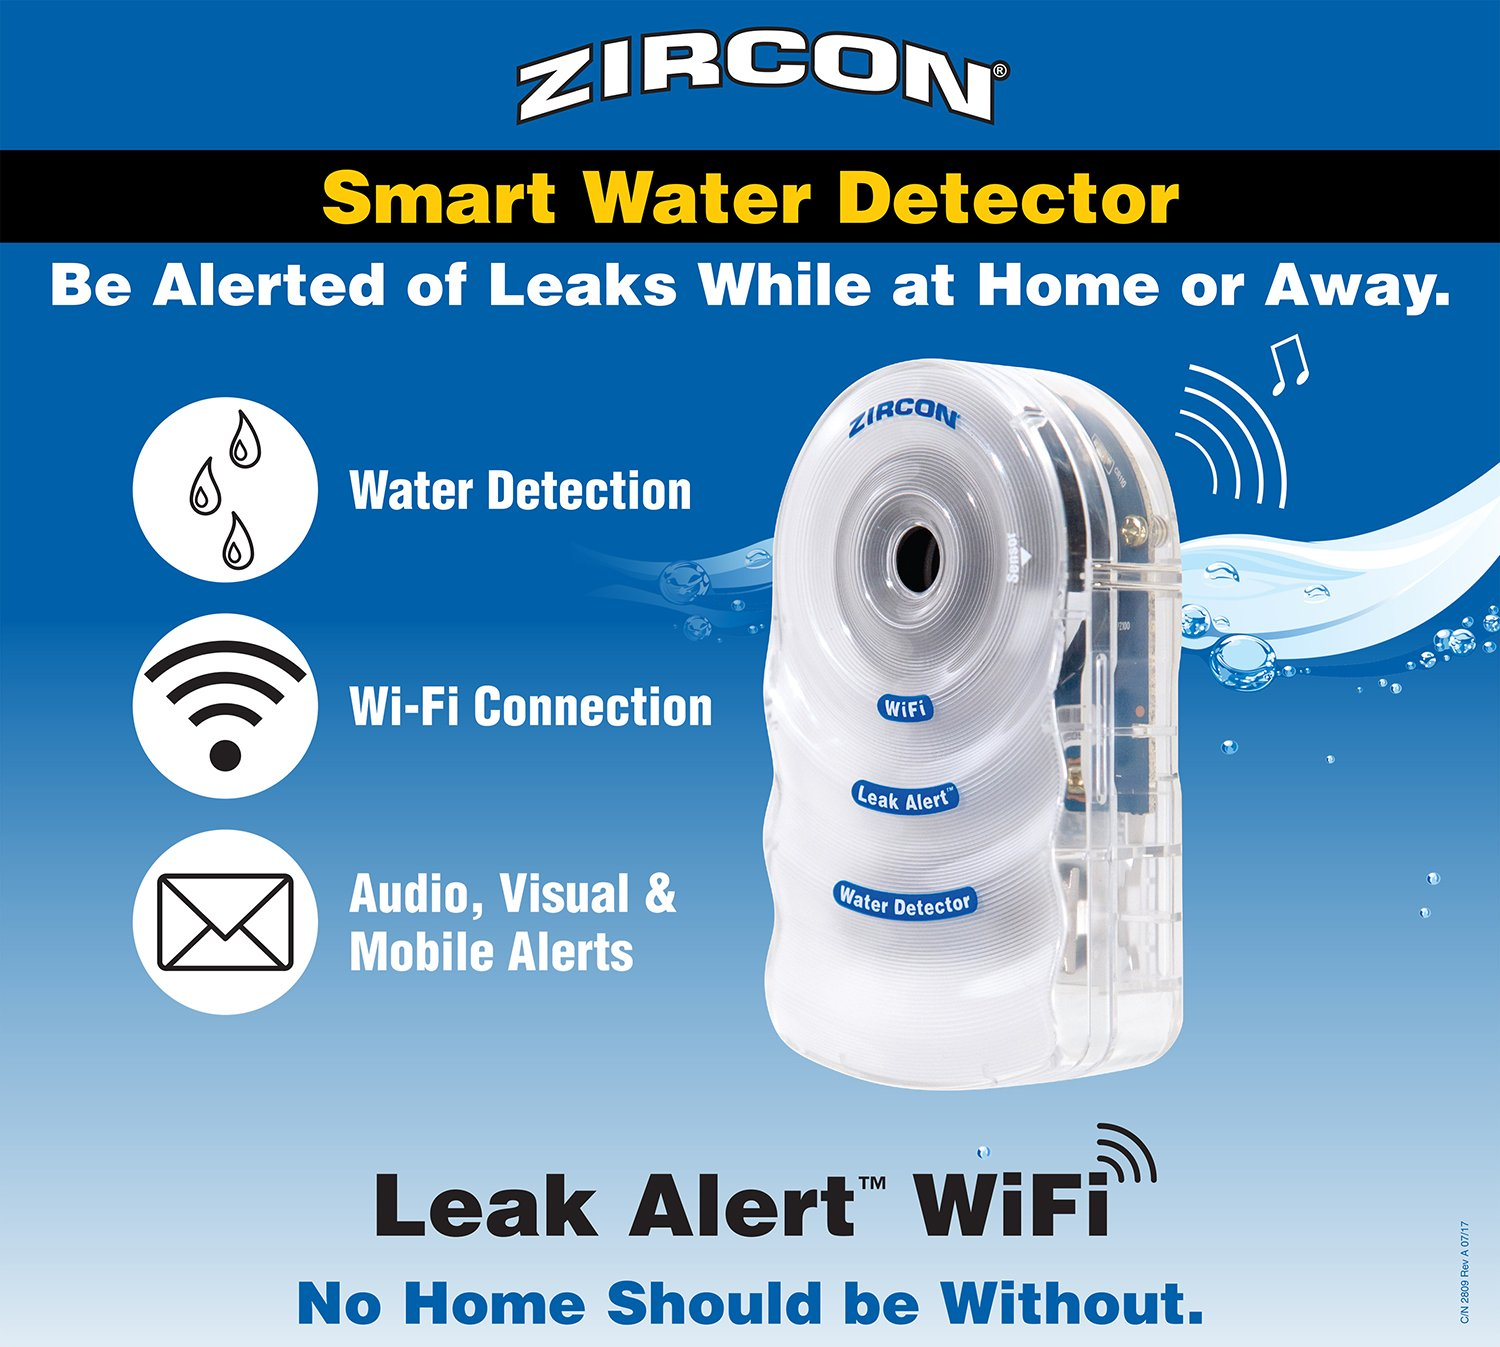 Zircon Leak Alert WiFi- 2 Pack - Smart Electronic Water Detector Alarm with Email, Audio and Visual Alerts - Battery Included by Zircon (Image #6)